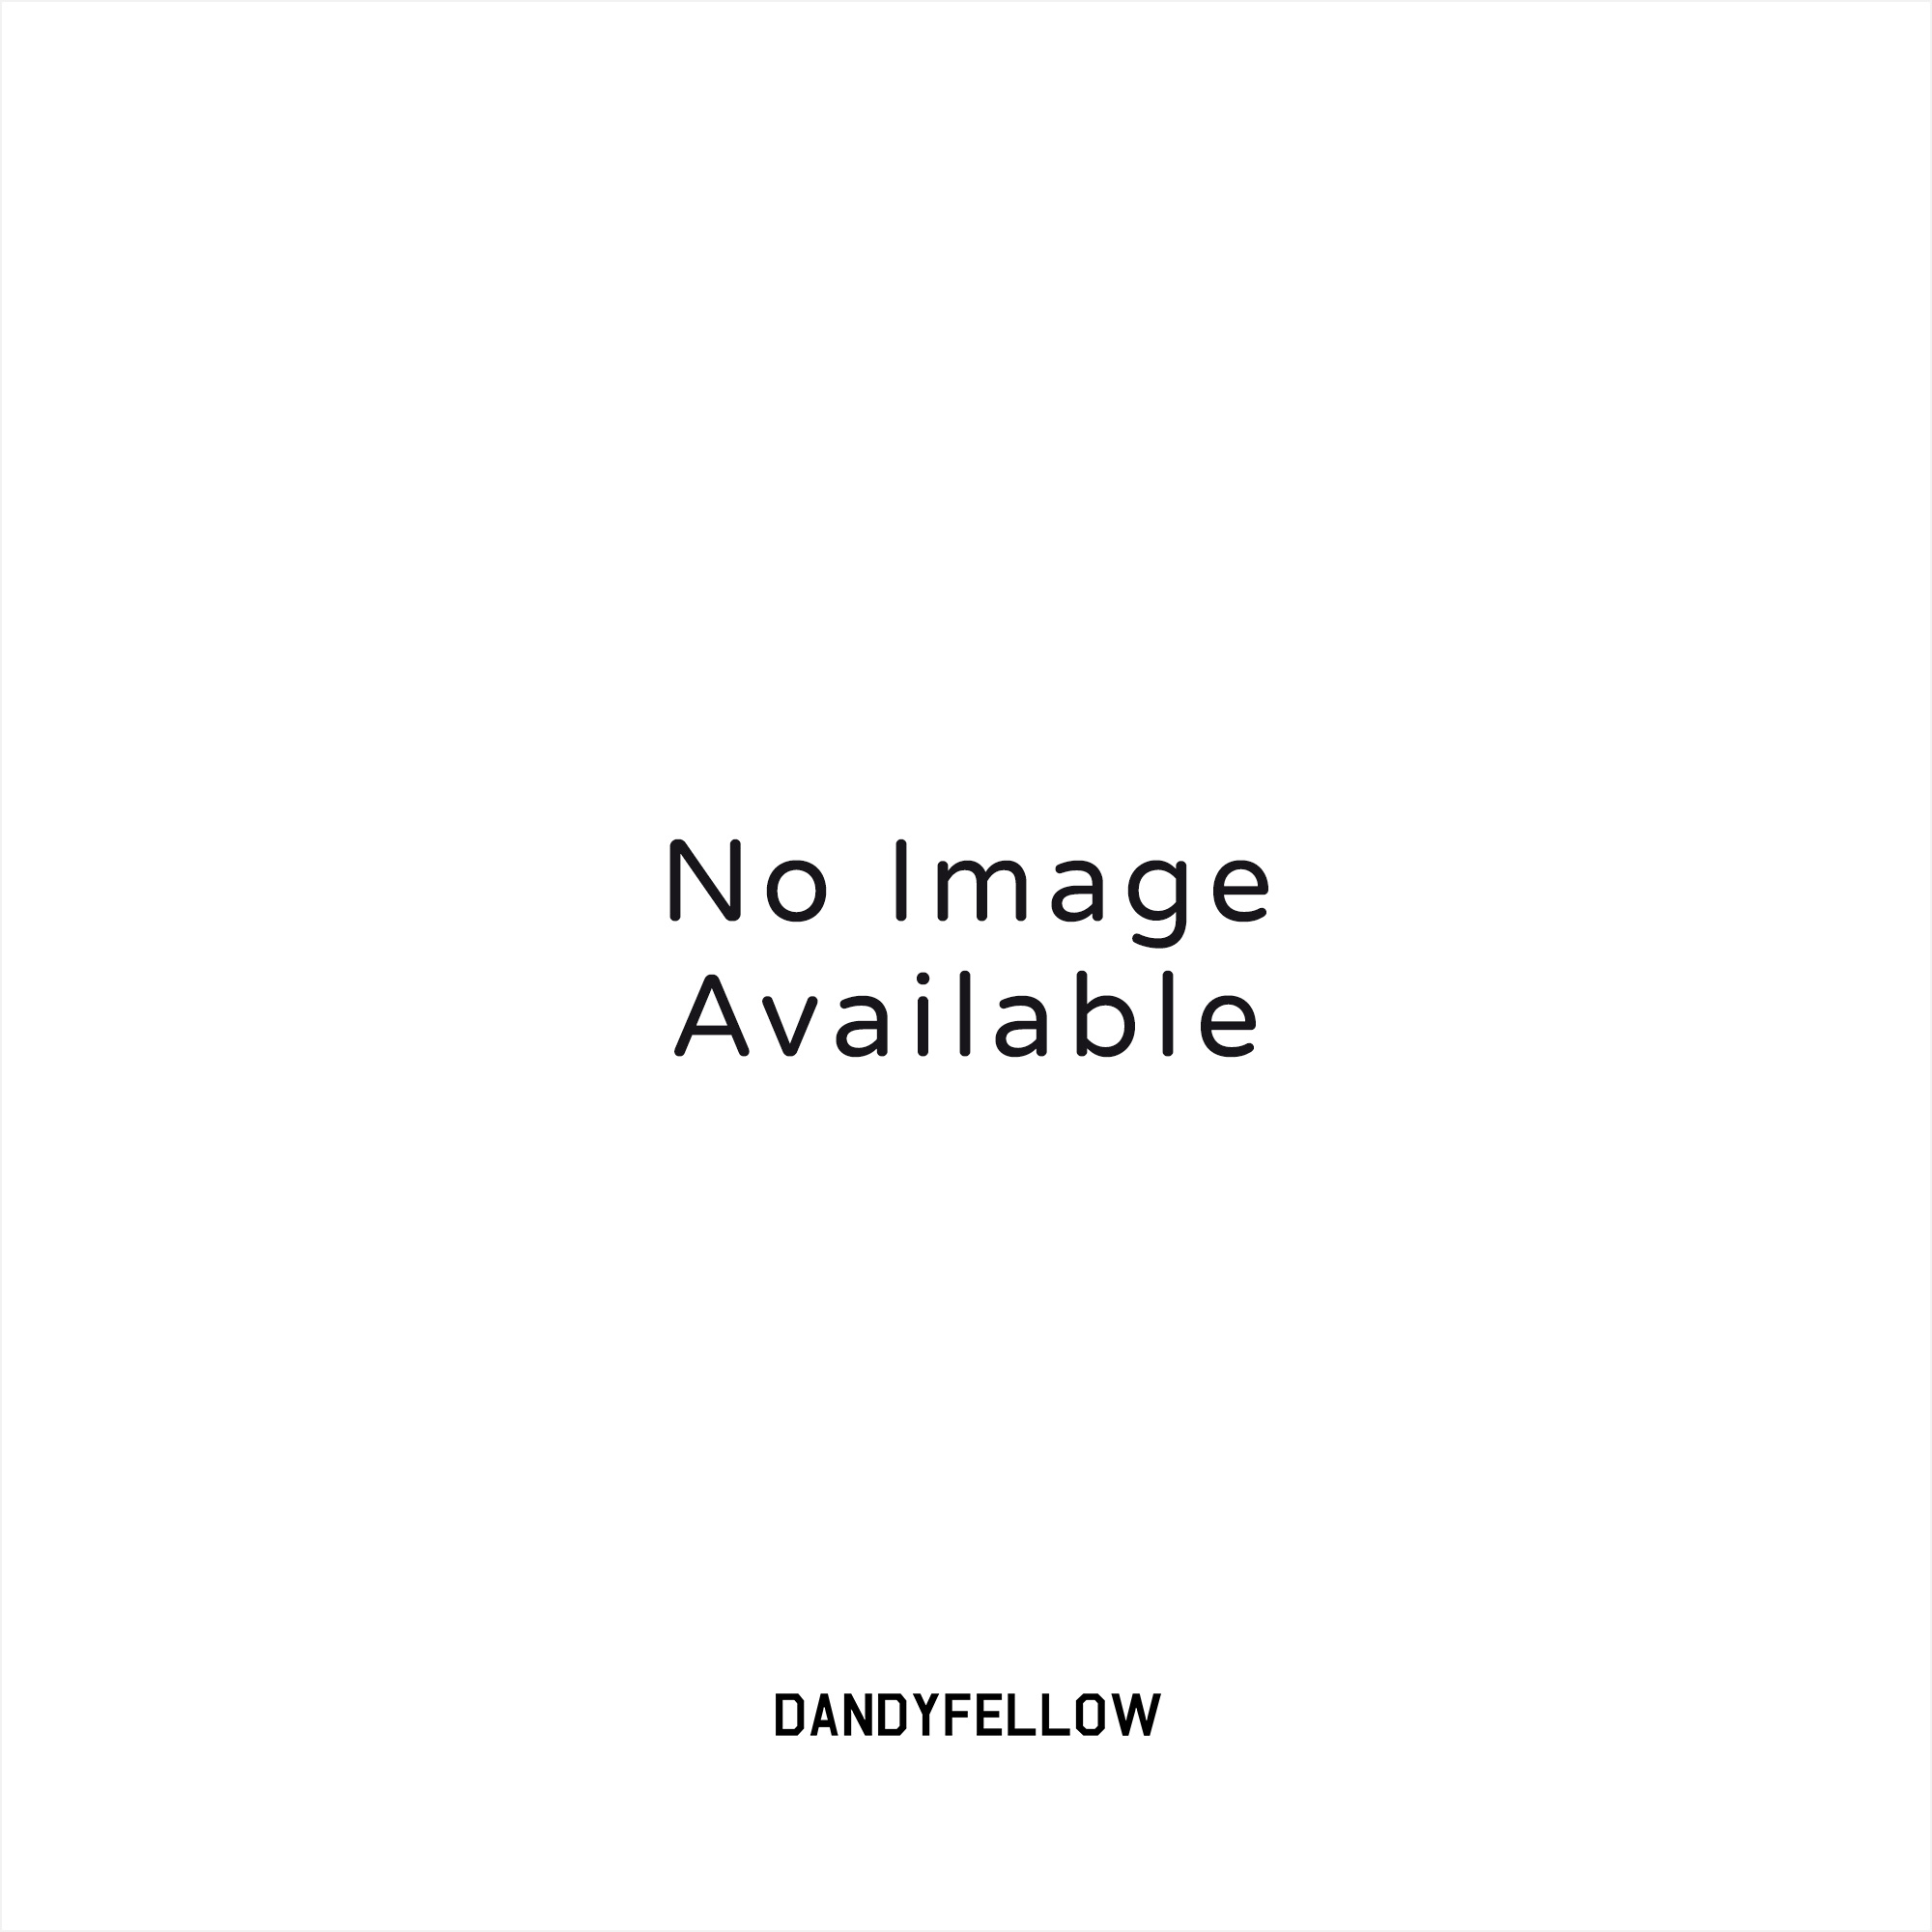 Nike Air Max 1 (Wheat Gold & Rust Pink) at Dandy Fellow